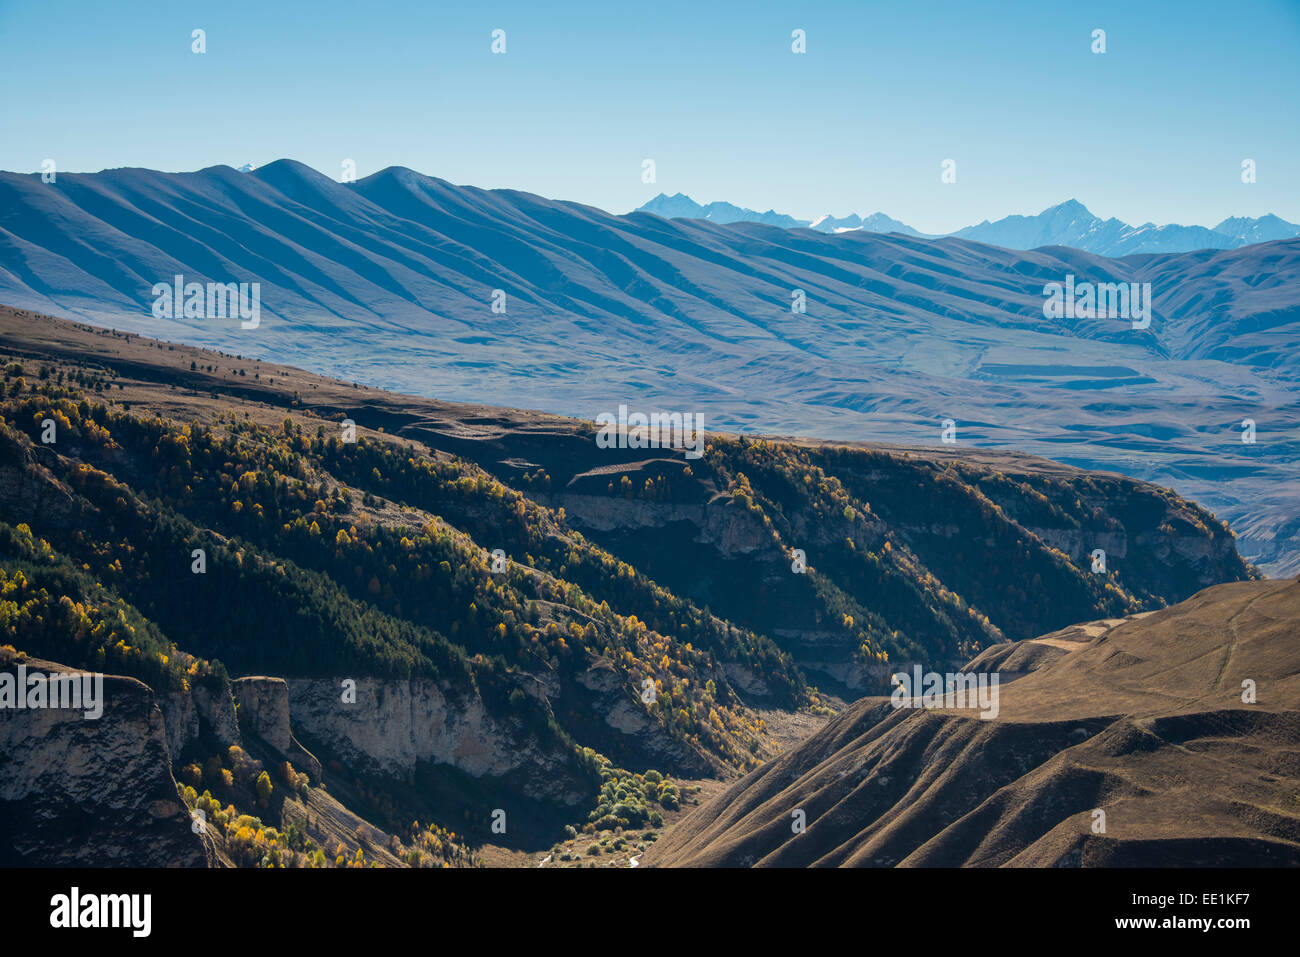 View over the Chechen Mountains, Chechnya, Caucasus, Russia, Europe - Stock Image